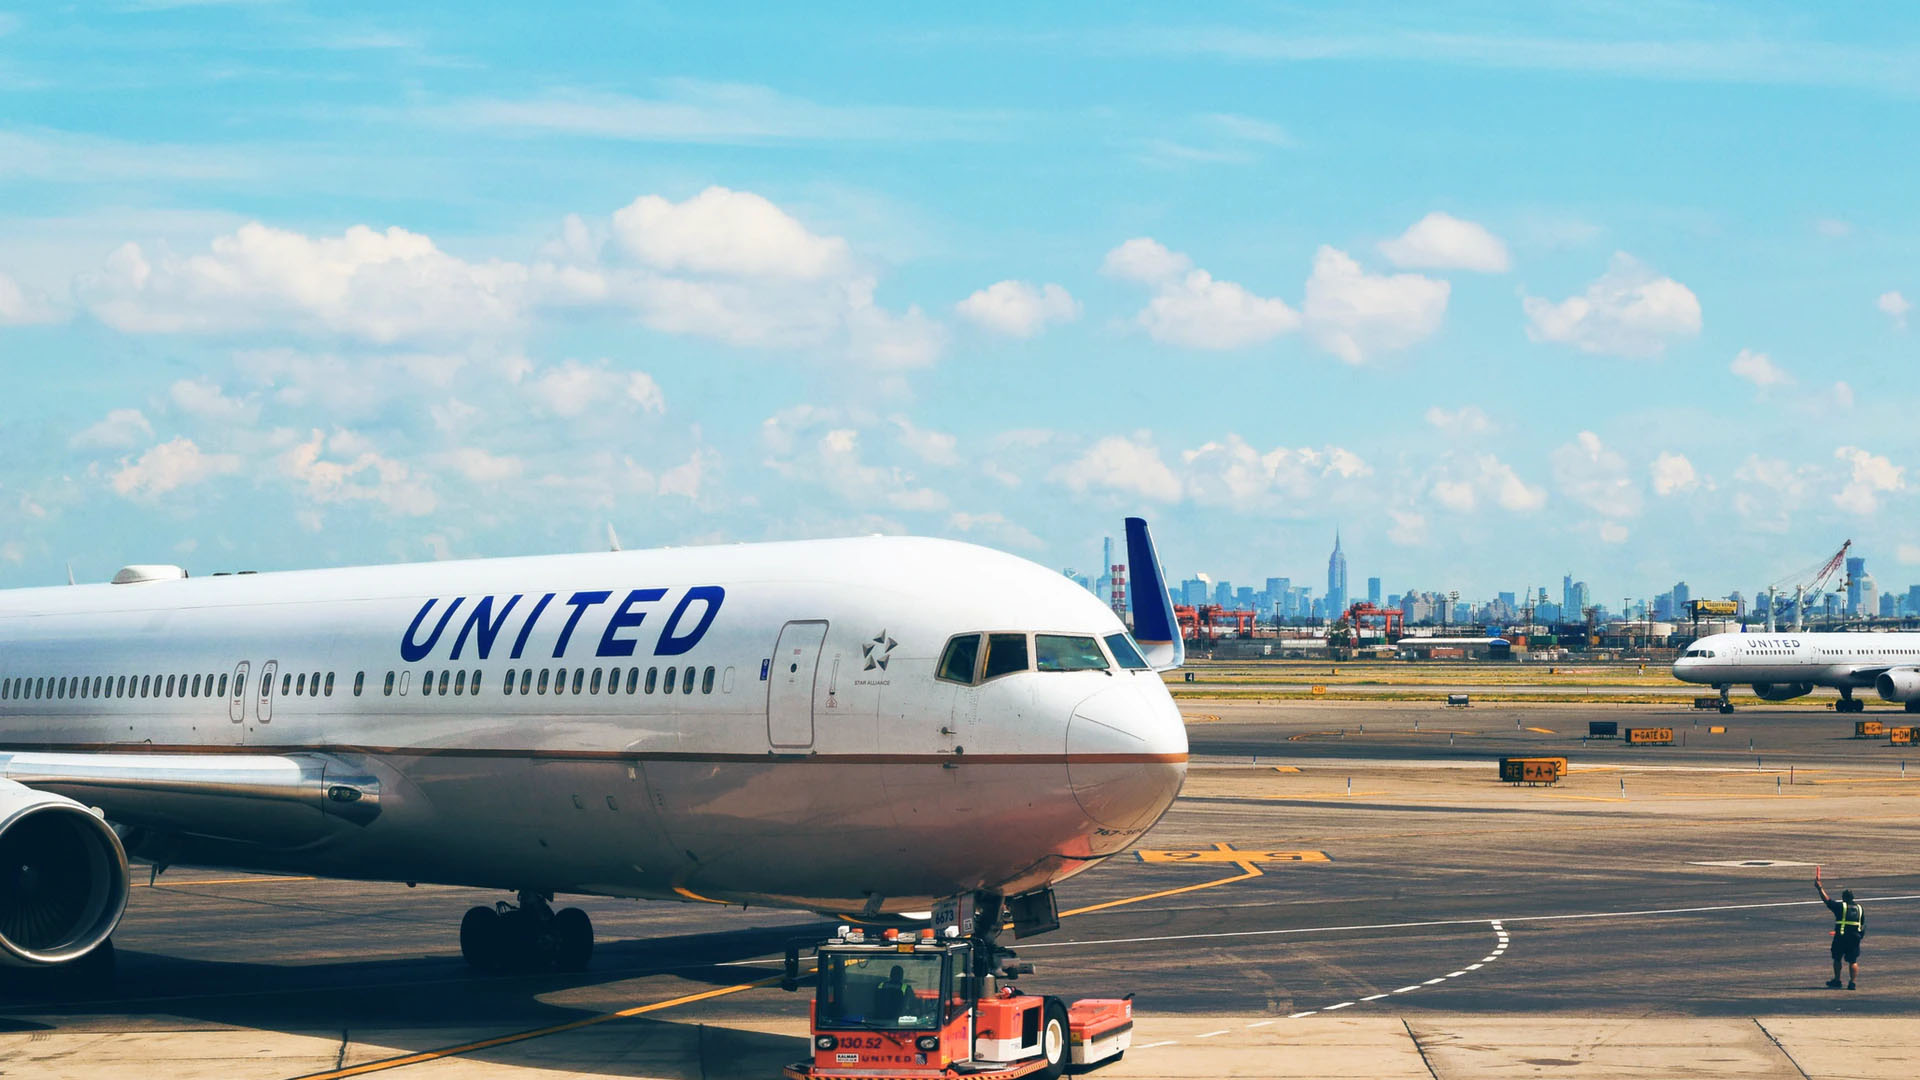 United Airlines extends the expiration of flight credits to the end of 2022